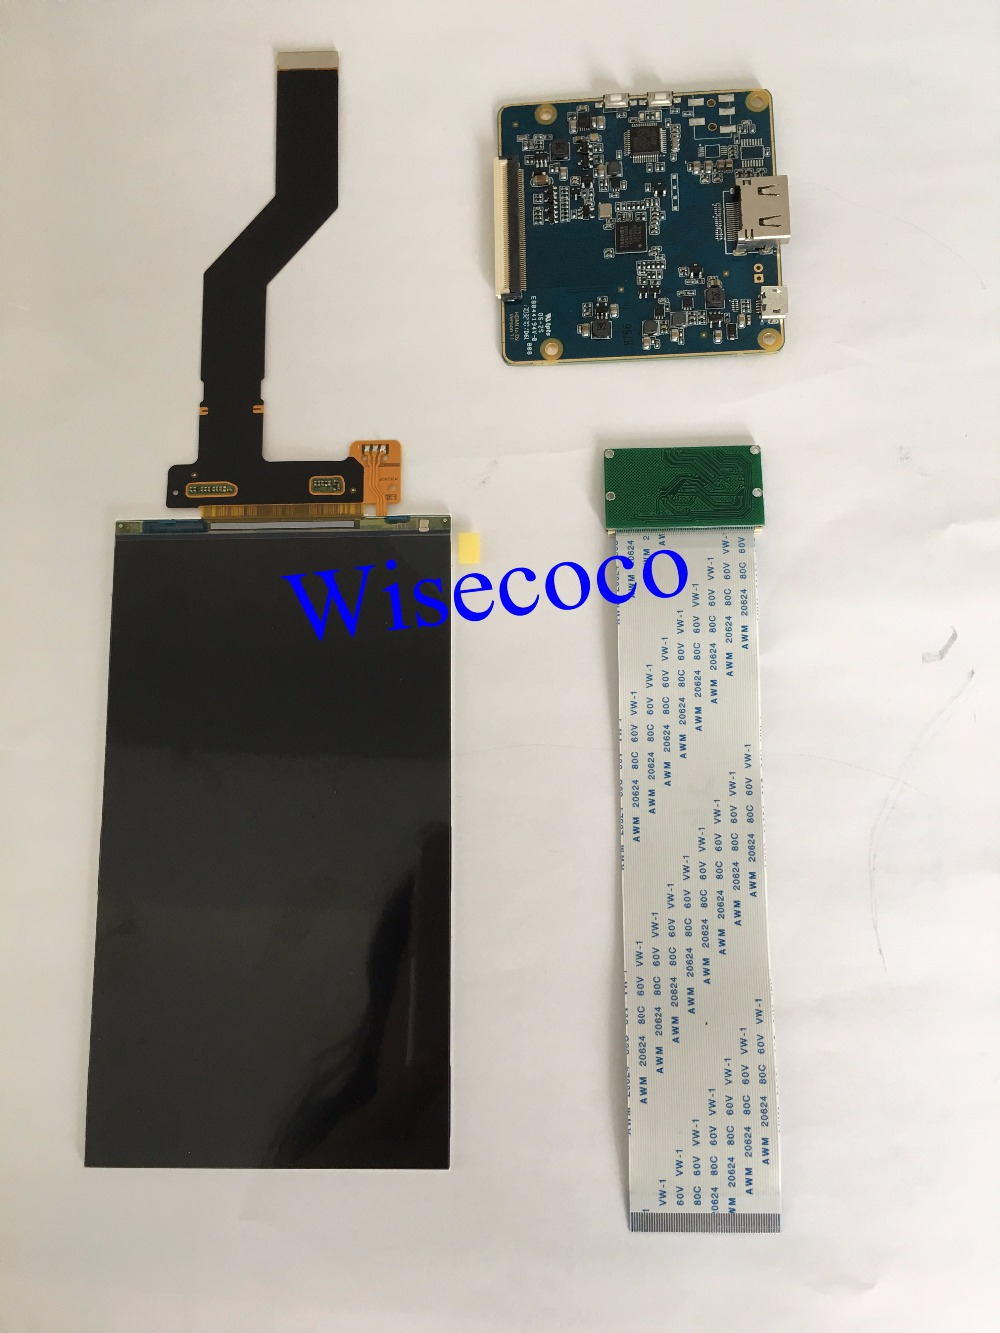 1440p 6 inch WQHD display hdmi lcd control board WITH 60 Hz Standard  refresh rate for diy vr glasses